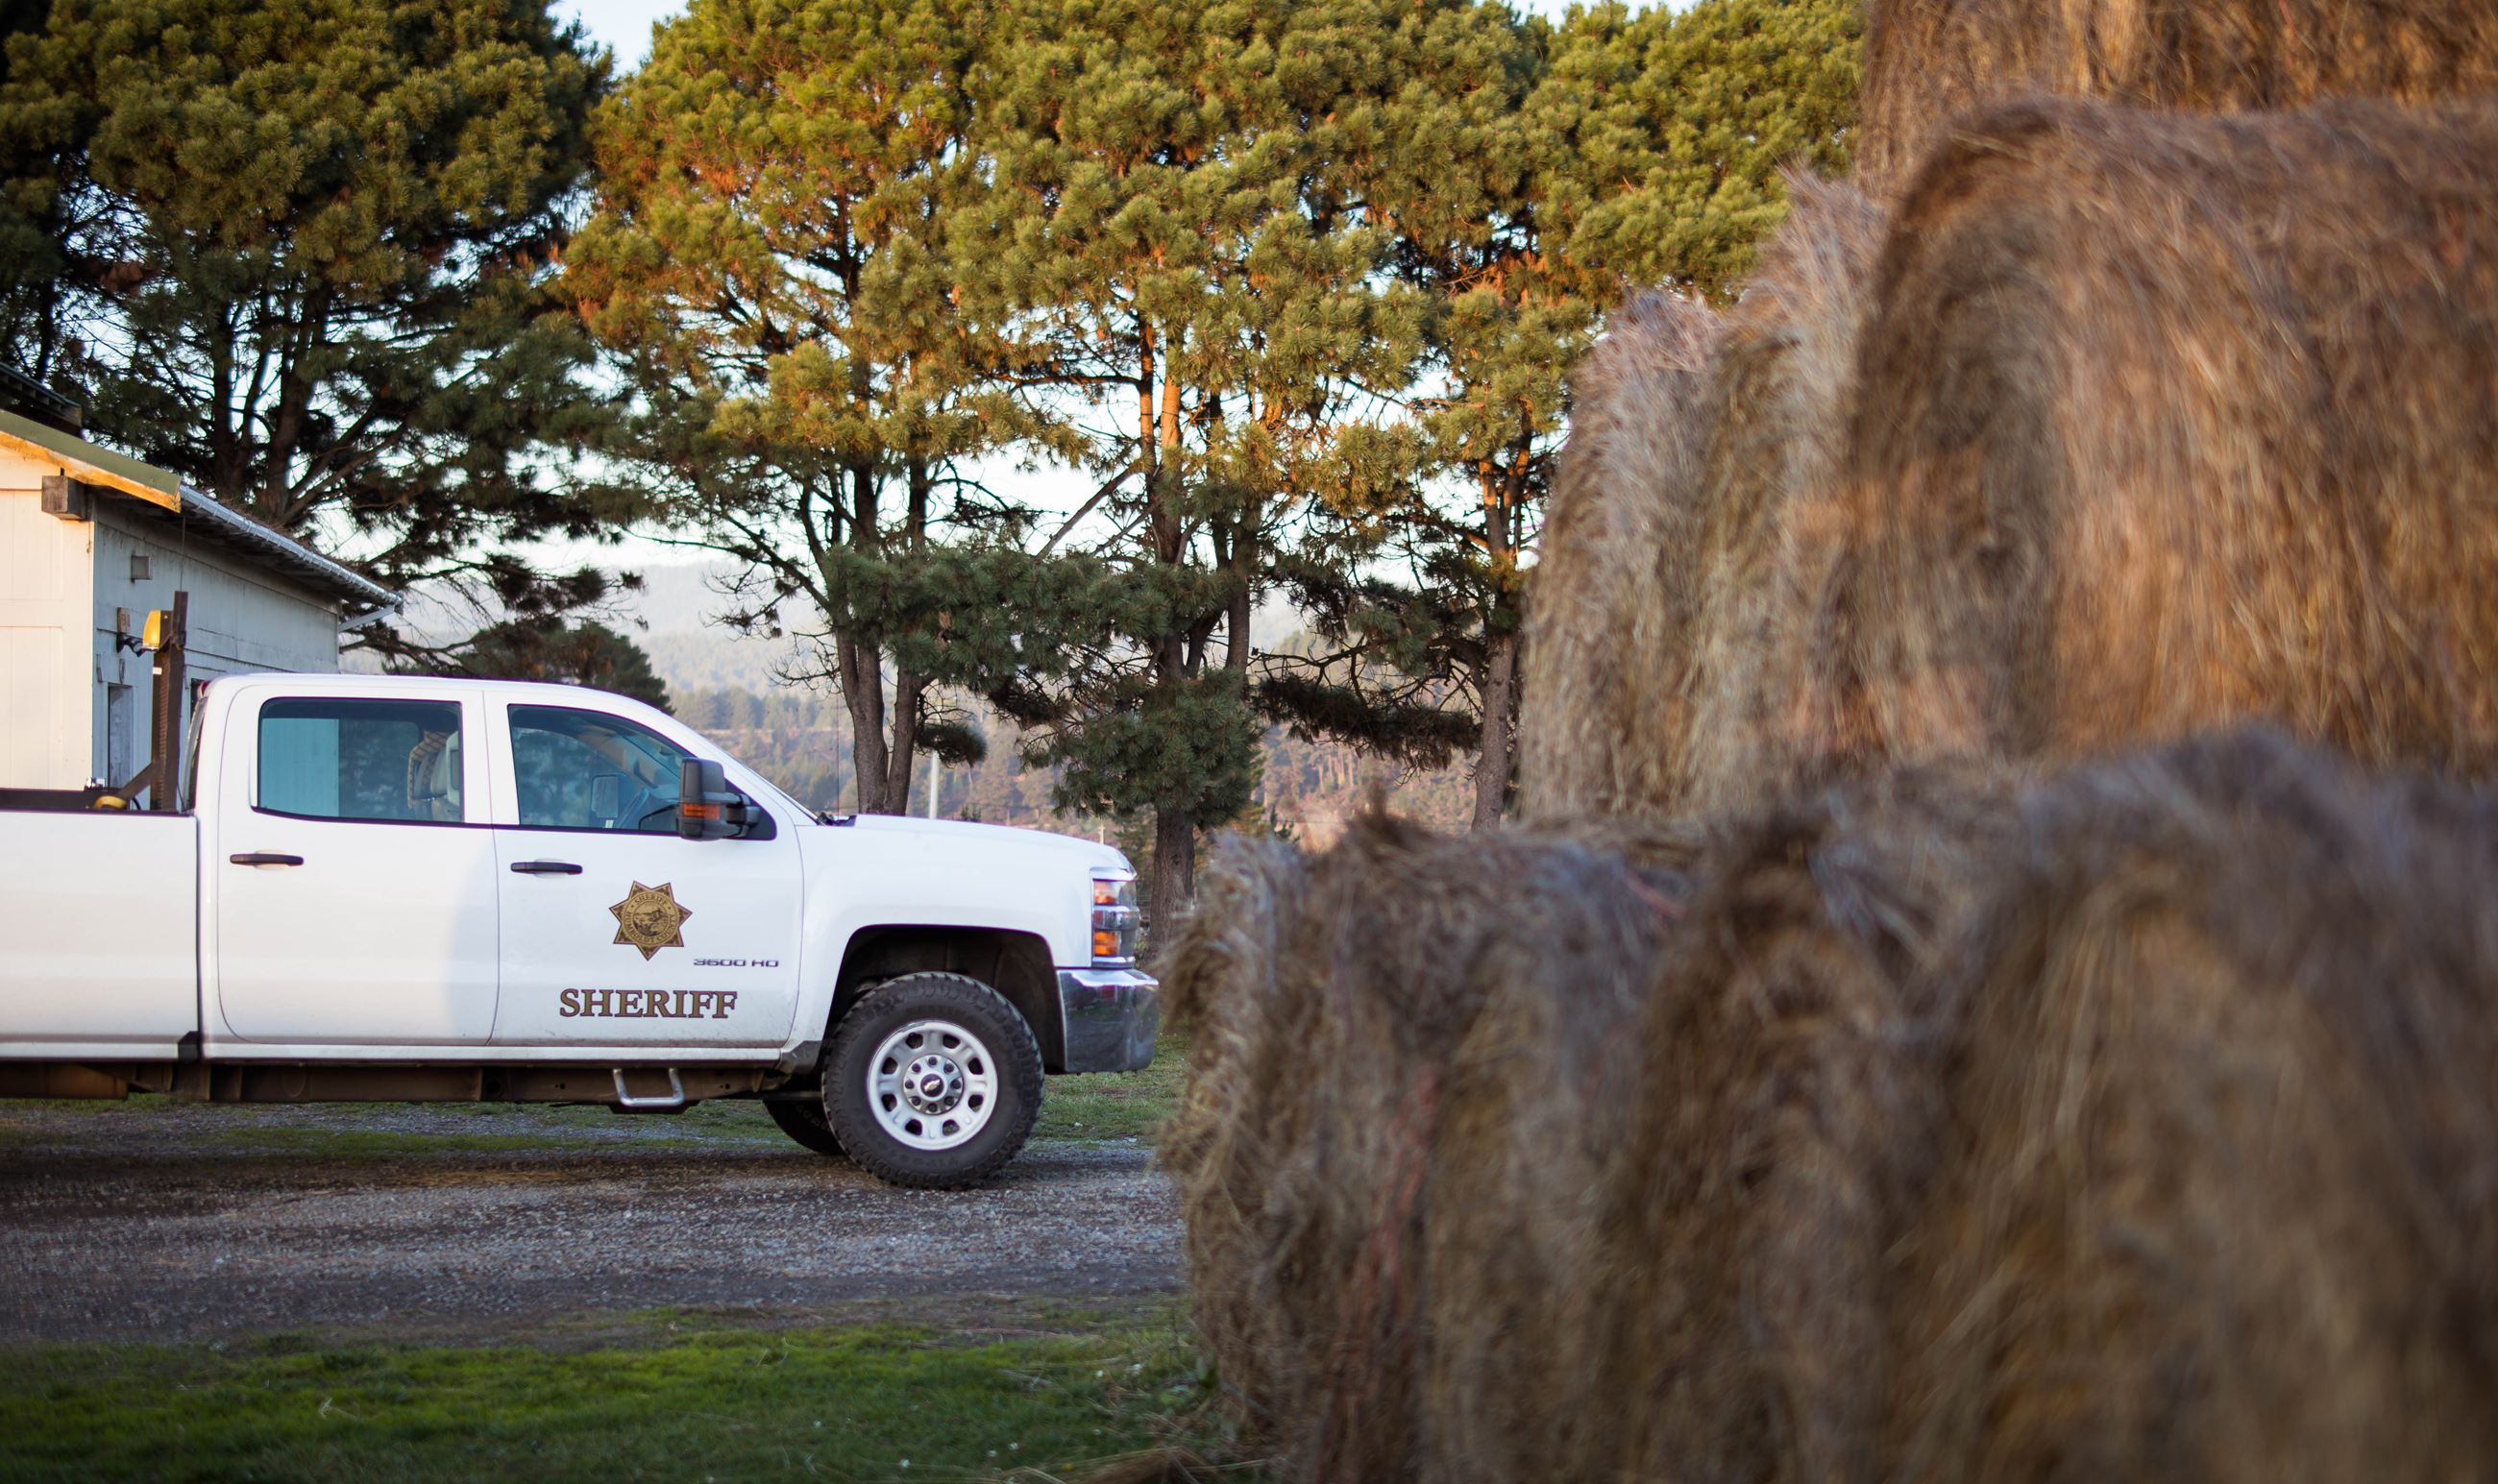 Sheriff truck with hay